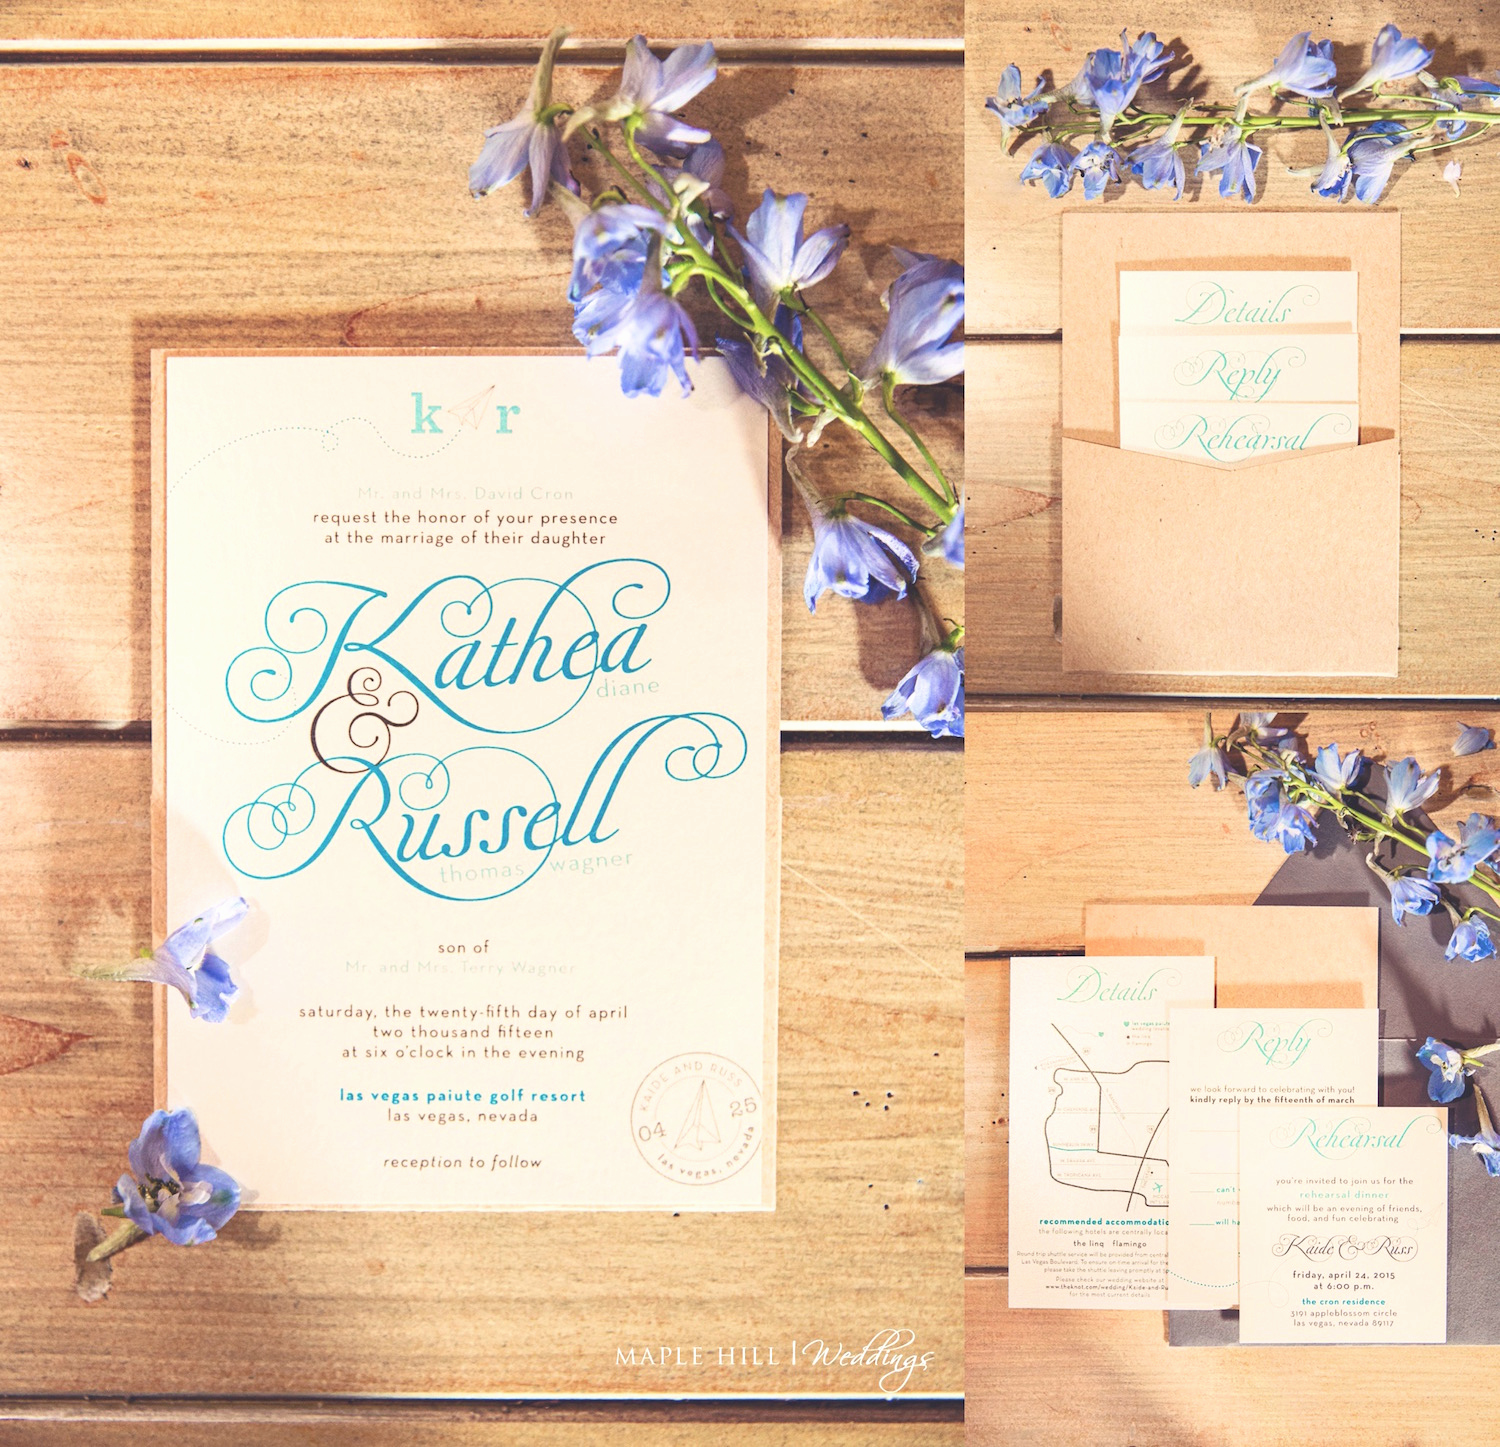 Paper Airplane Invitation Template Luxury Paper Airplane Wedding Invitations Kathea and Russell